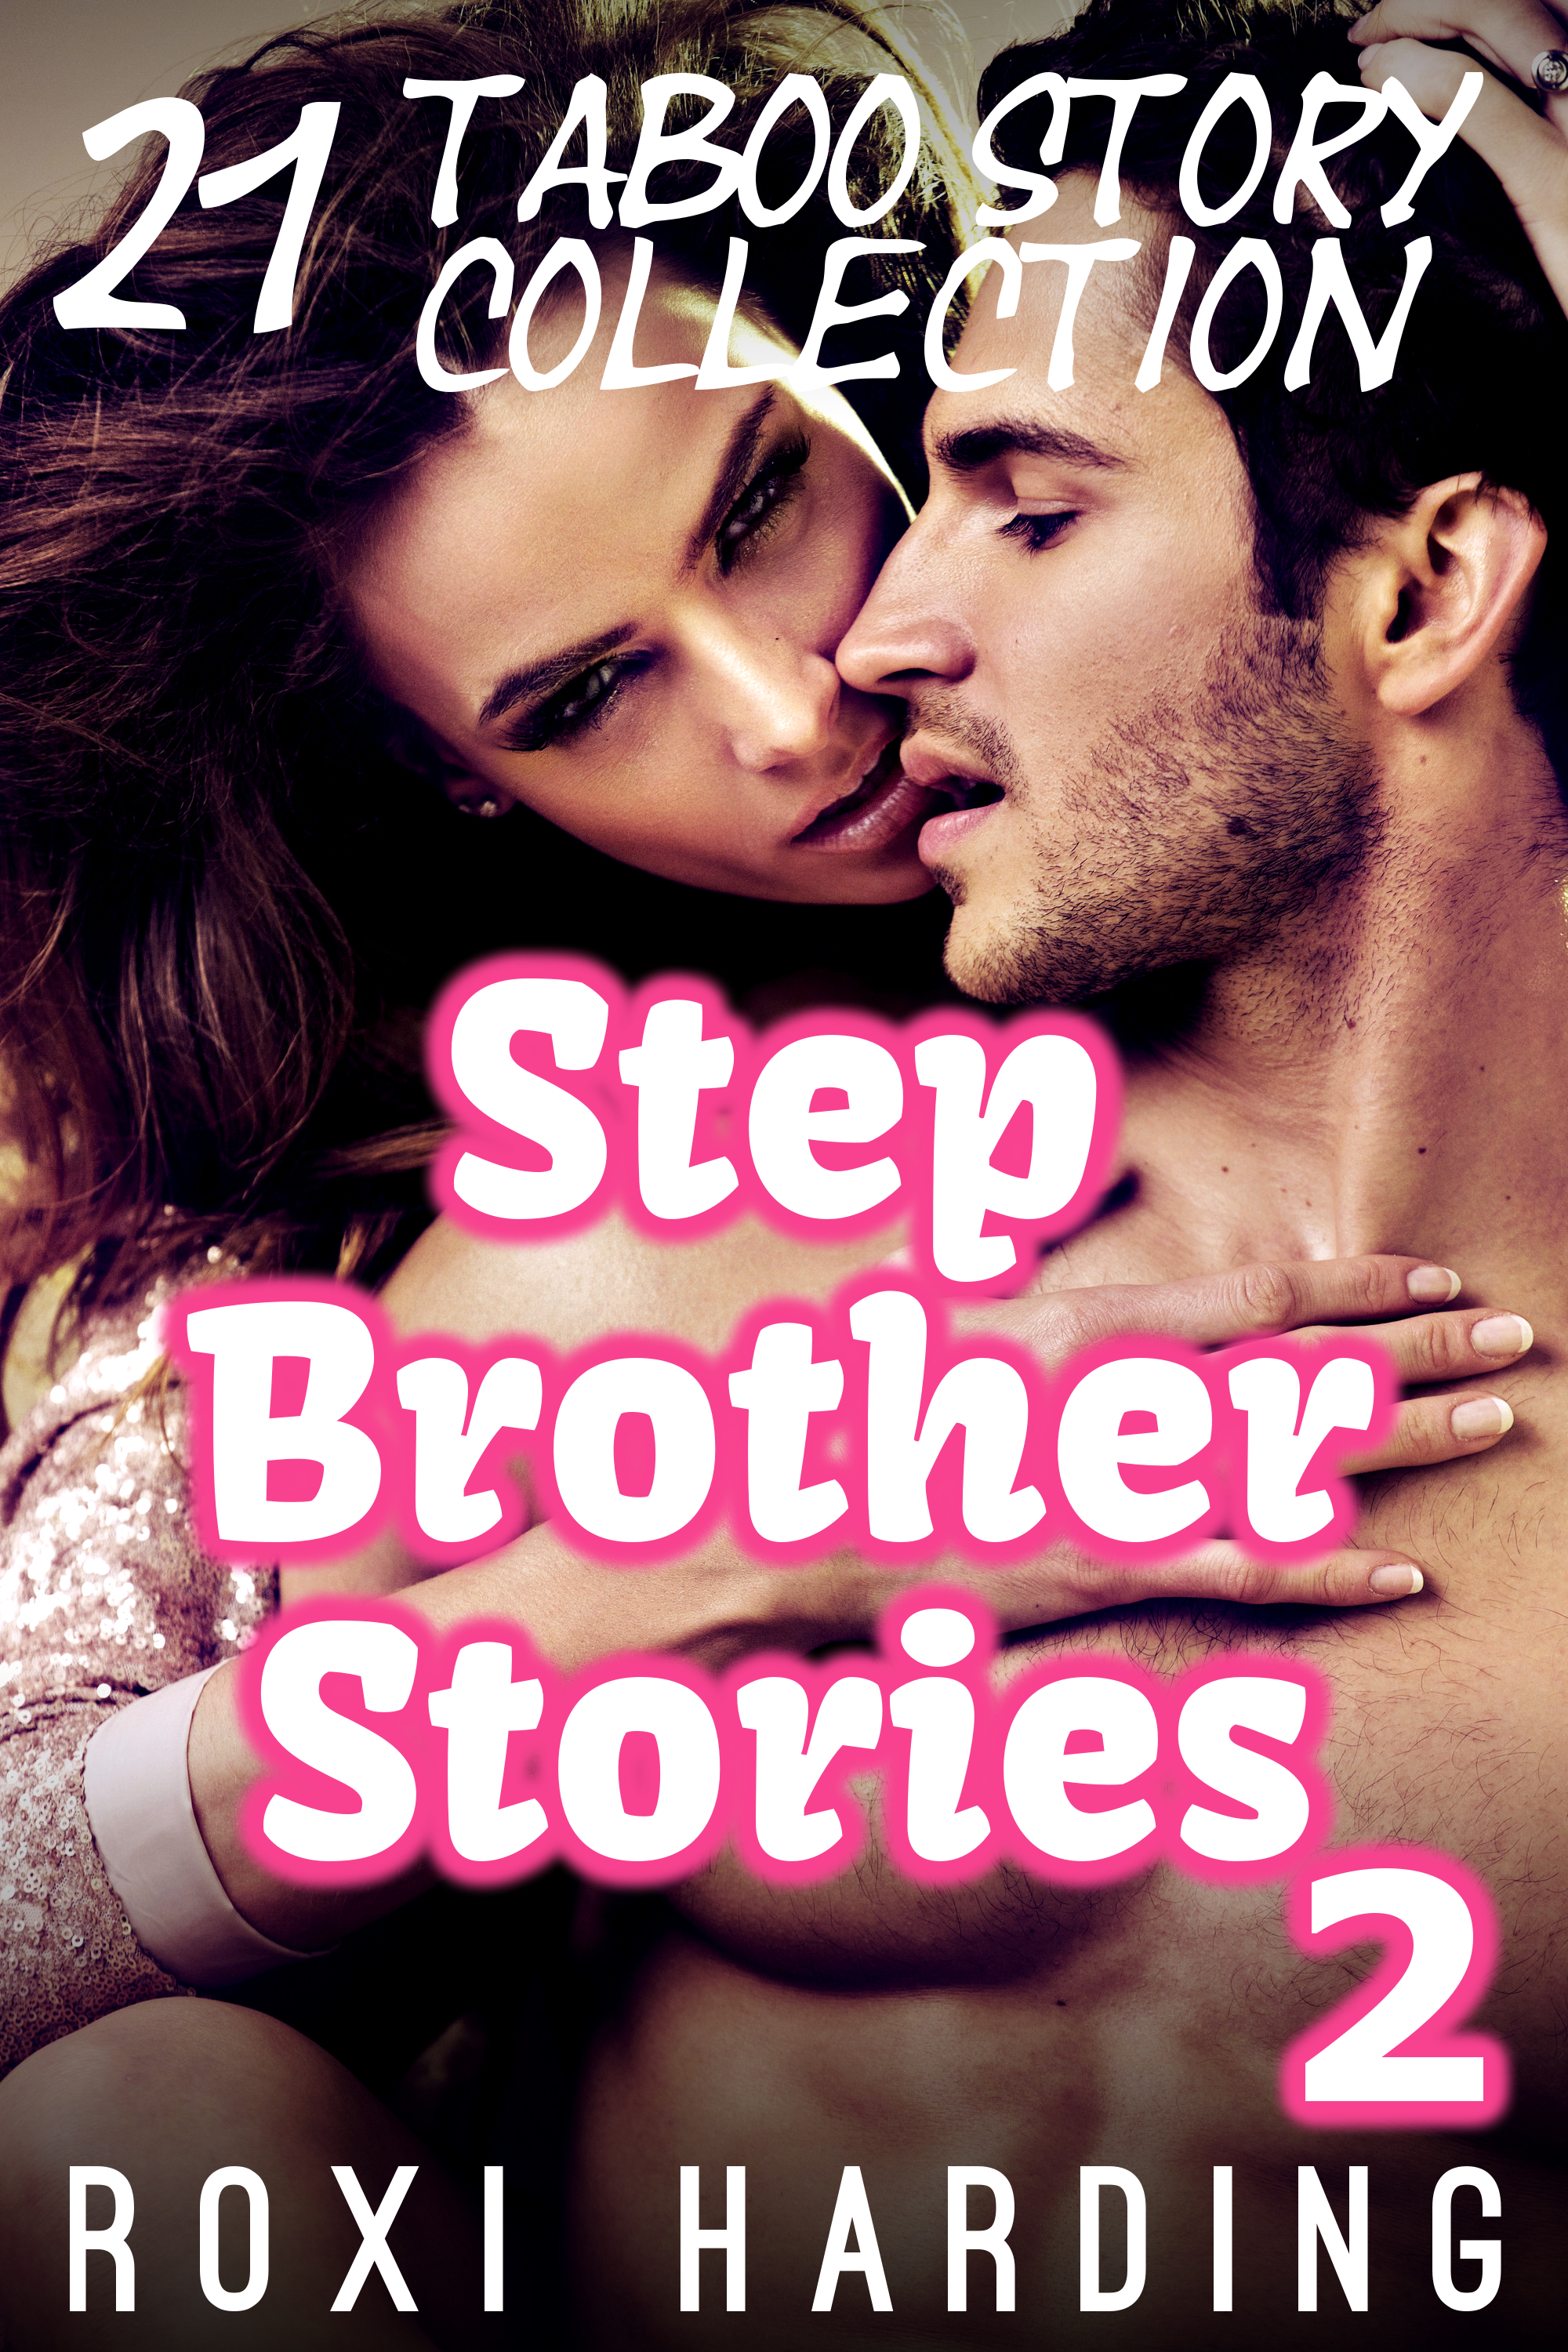 Stepbrother Stories 2 - 21 Taboo Story Collection